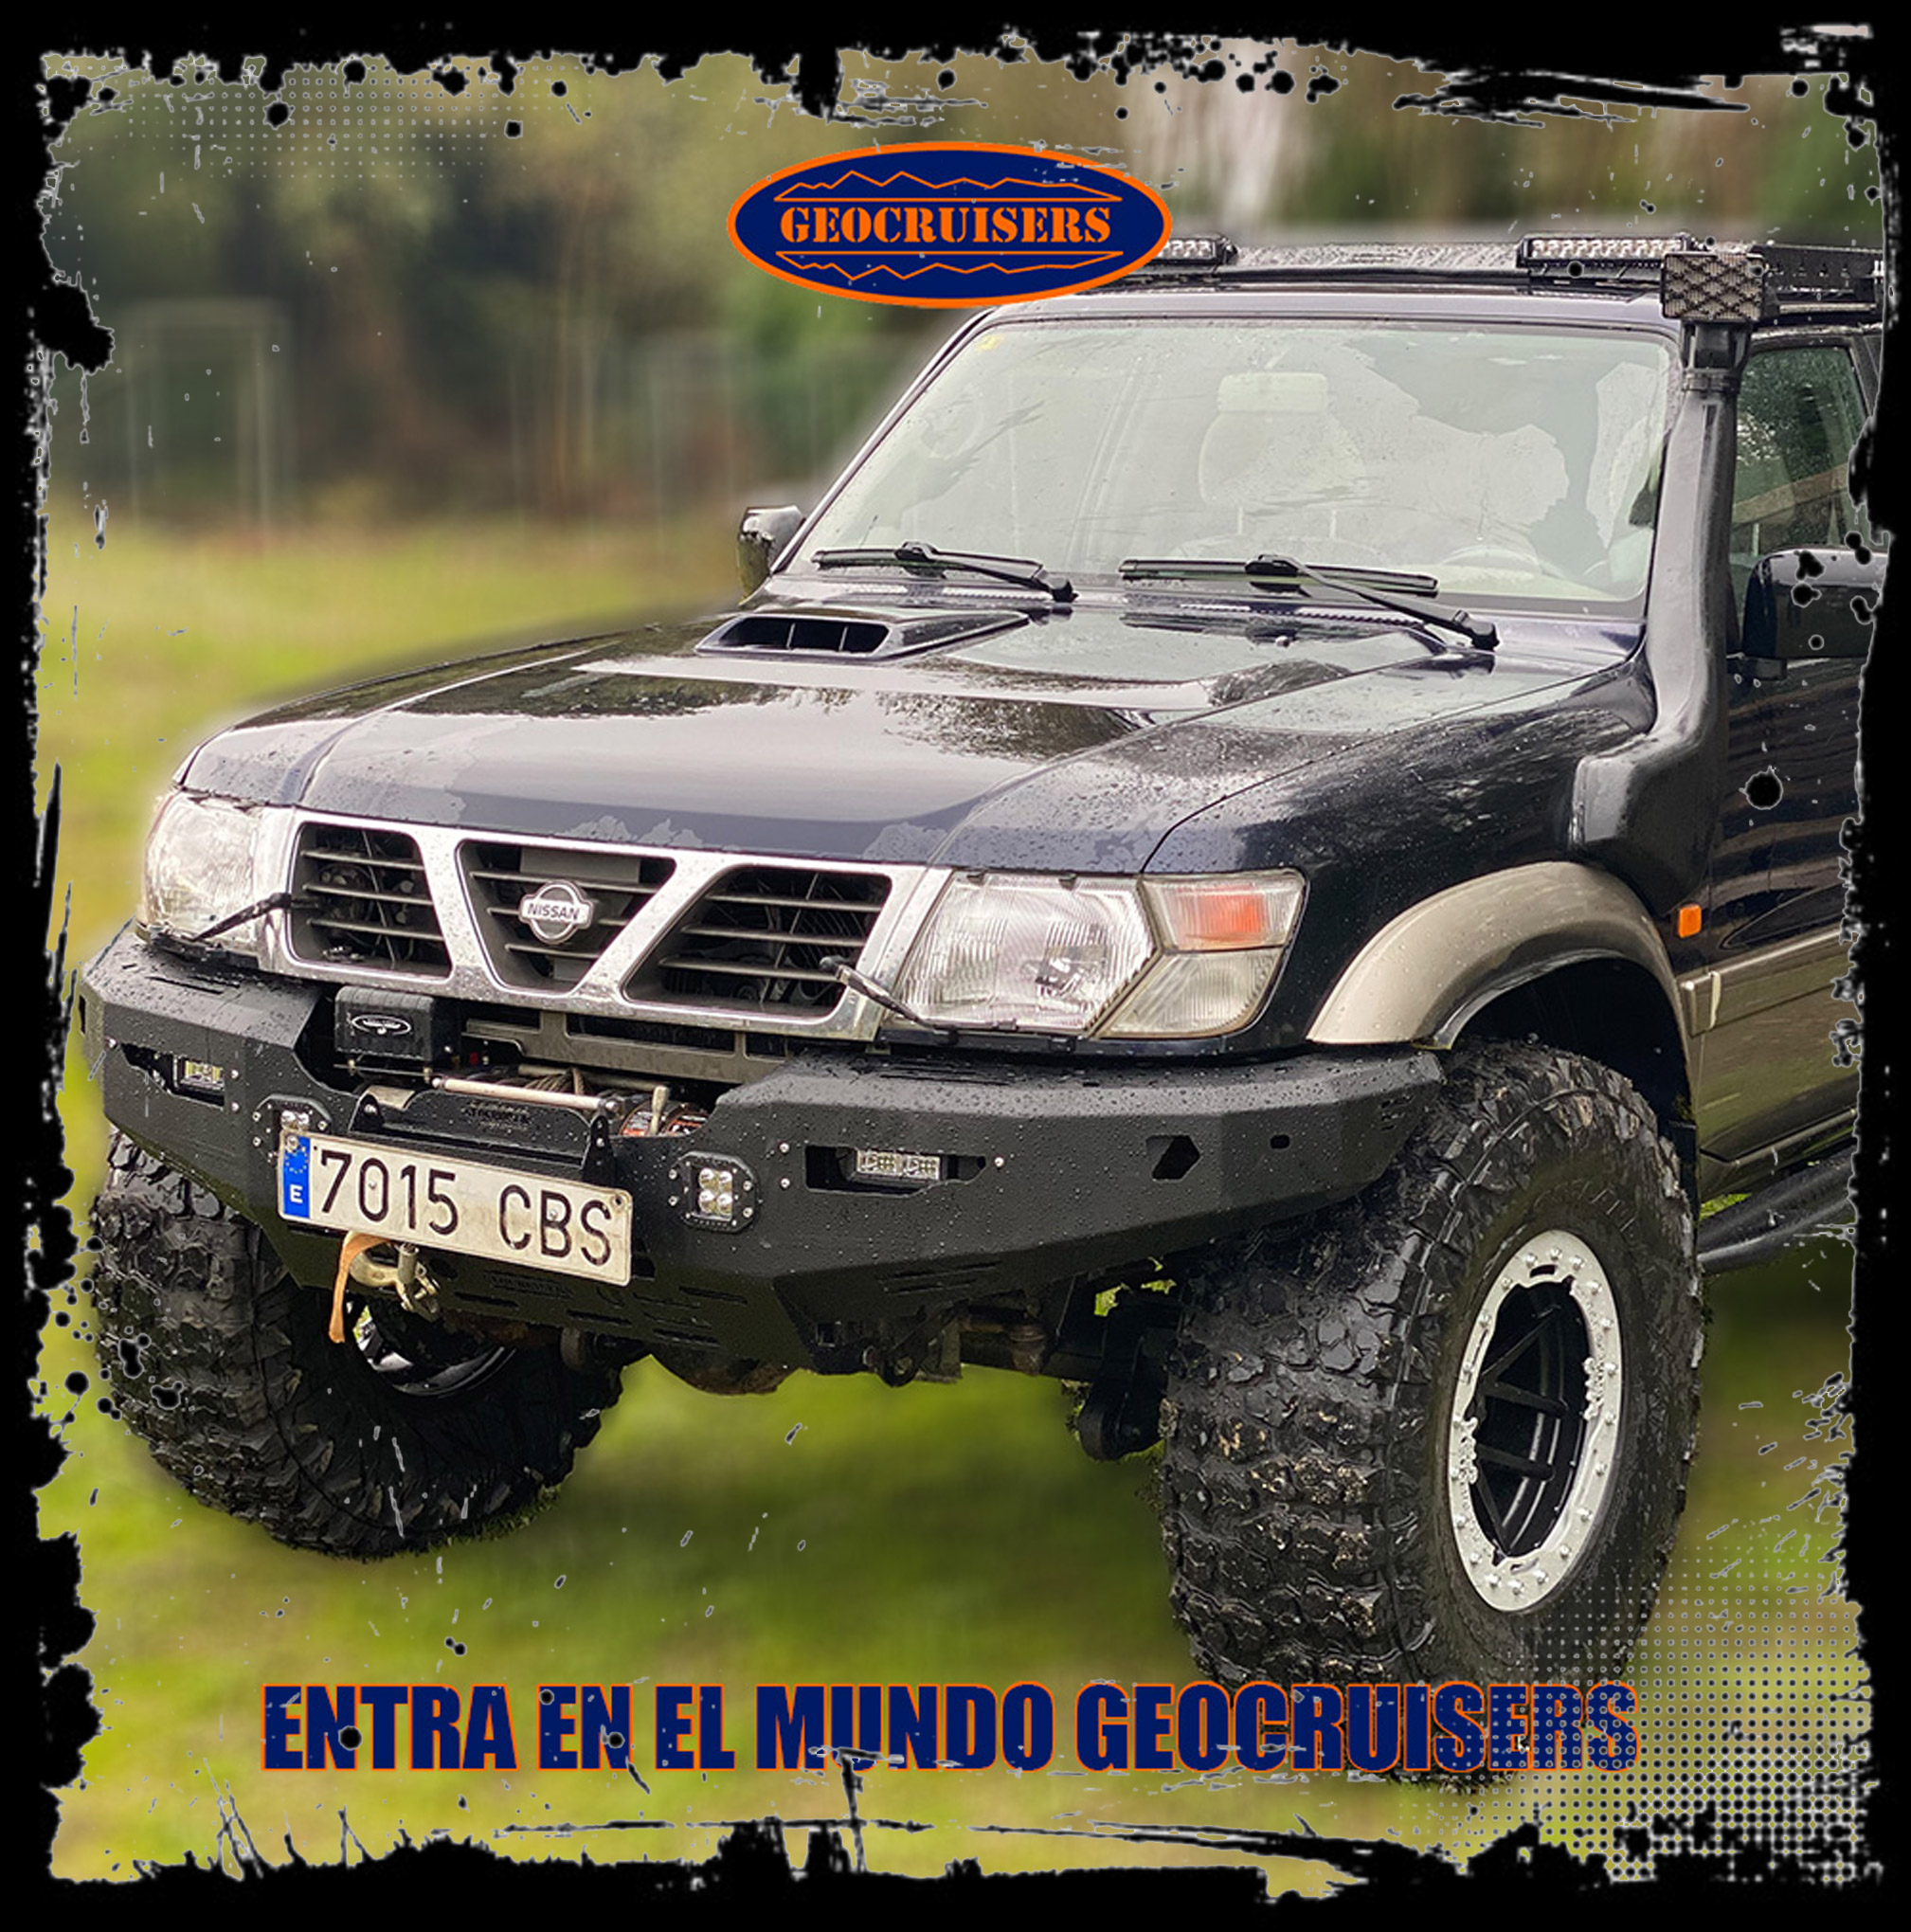 Geocruisers saca defensas para NISSAN PATROL GR Y61